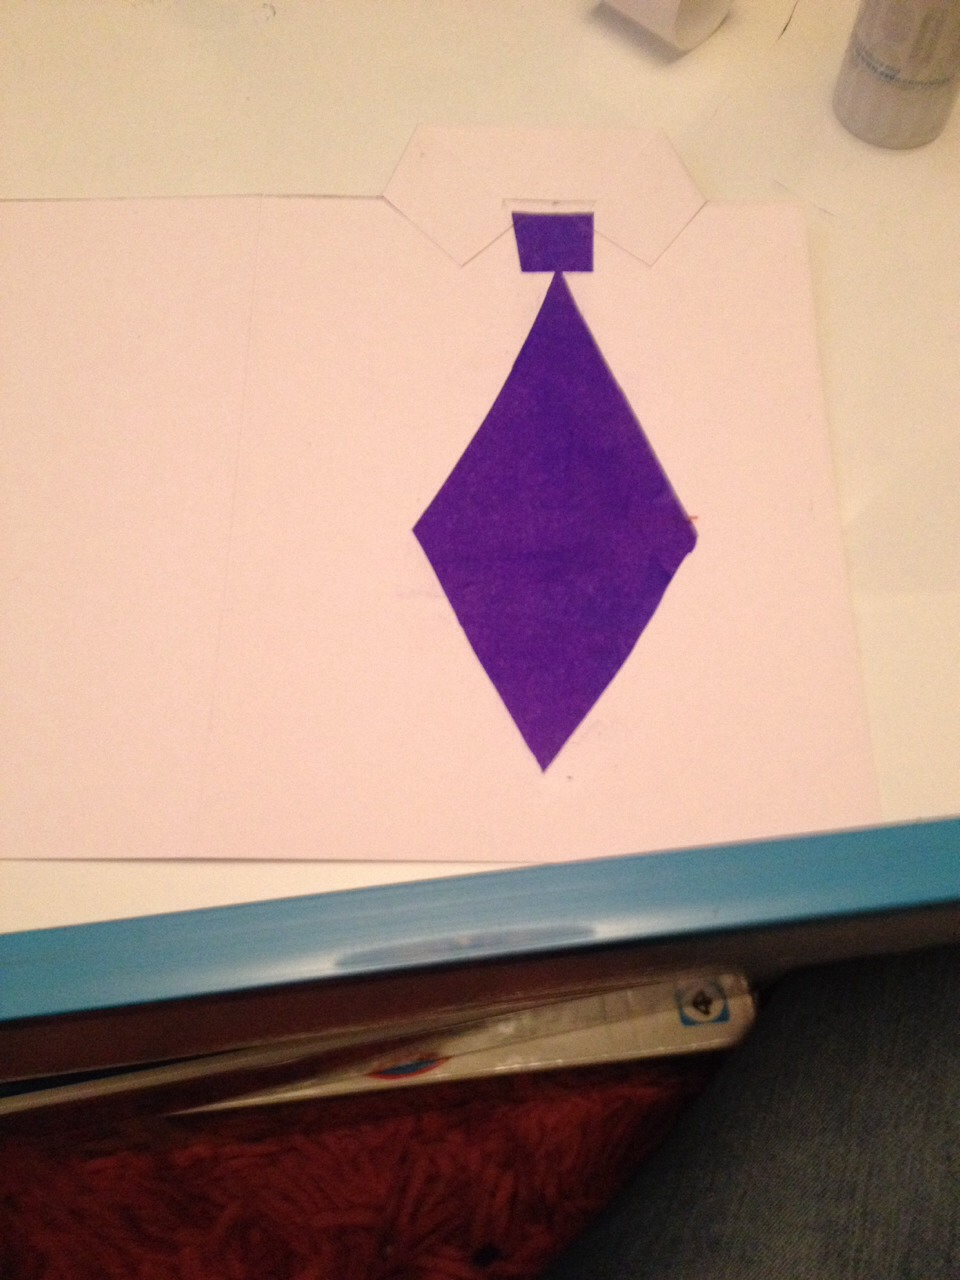 Put a diamond on the end of that trapezium